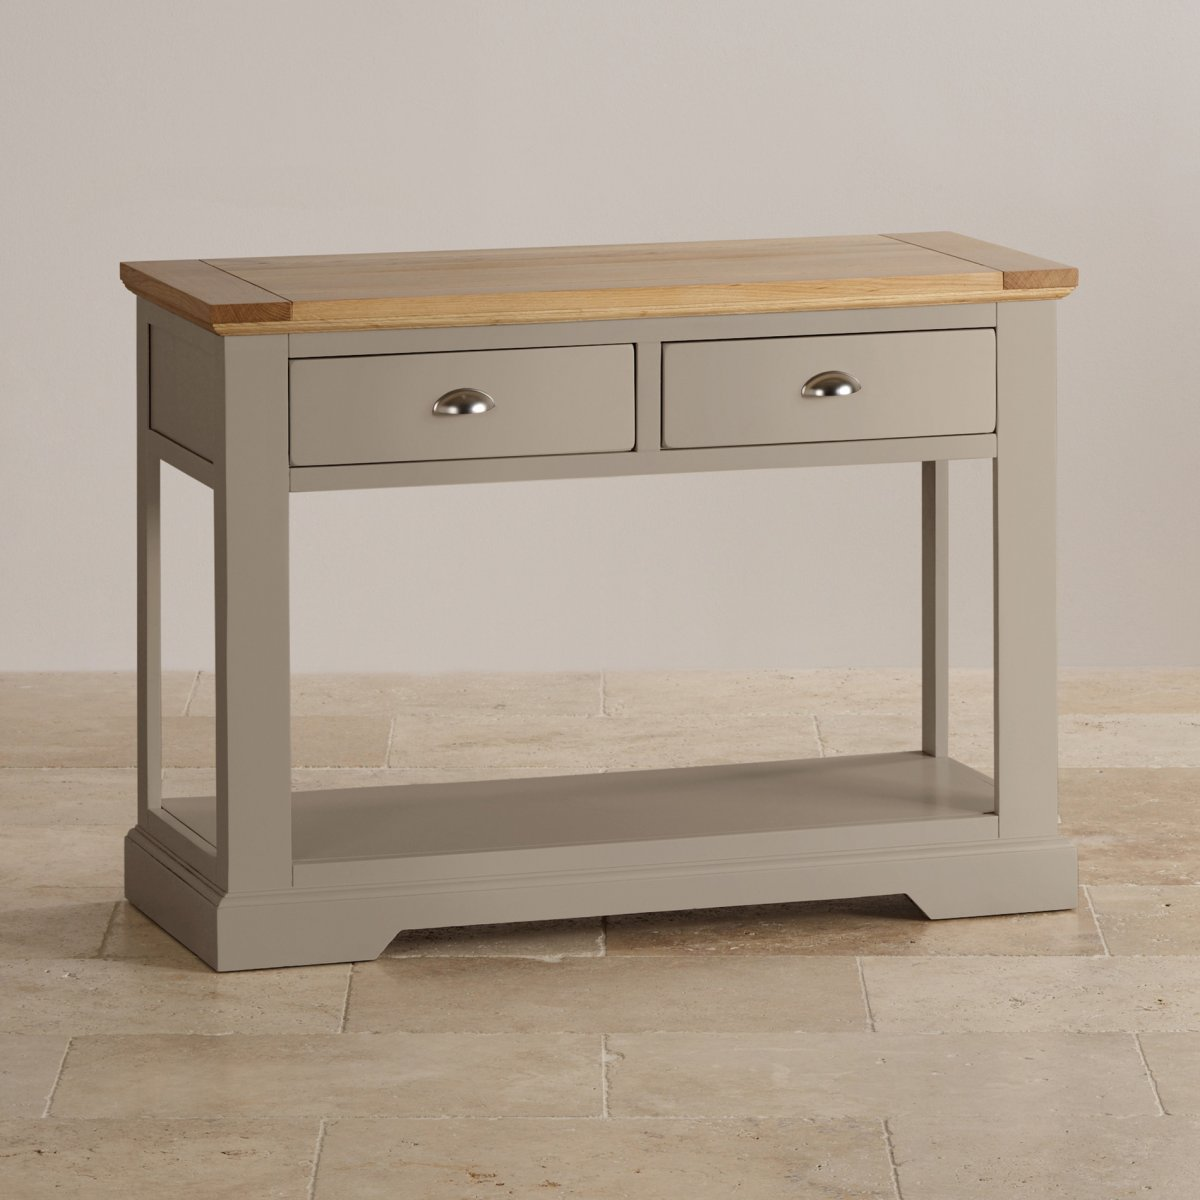 St ives grey console table with brushed oak top for Sofa table lighting